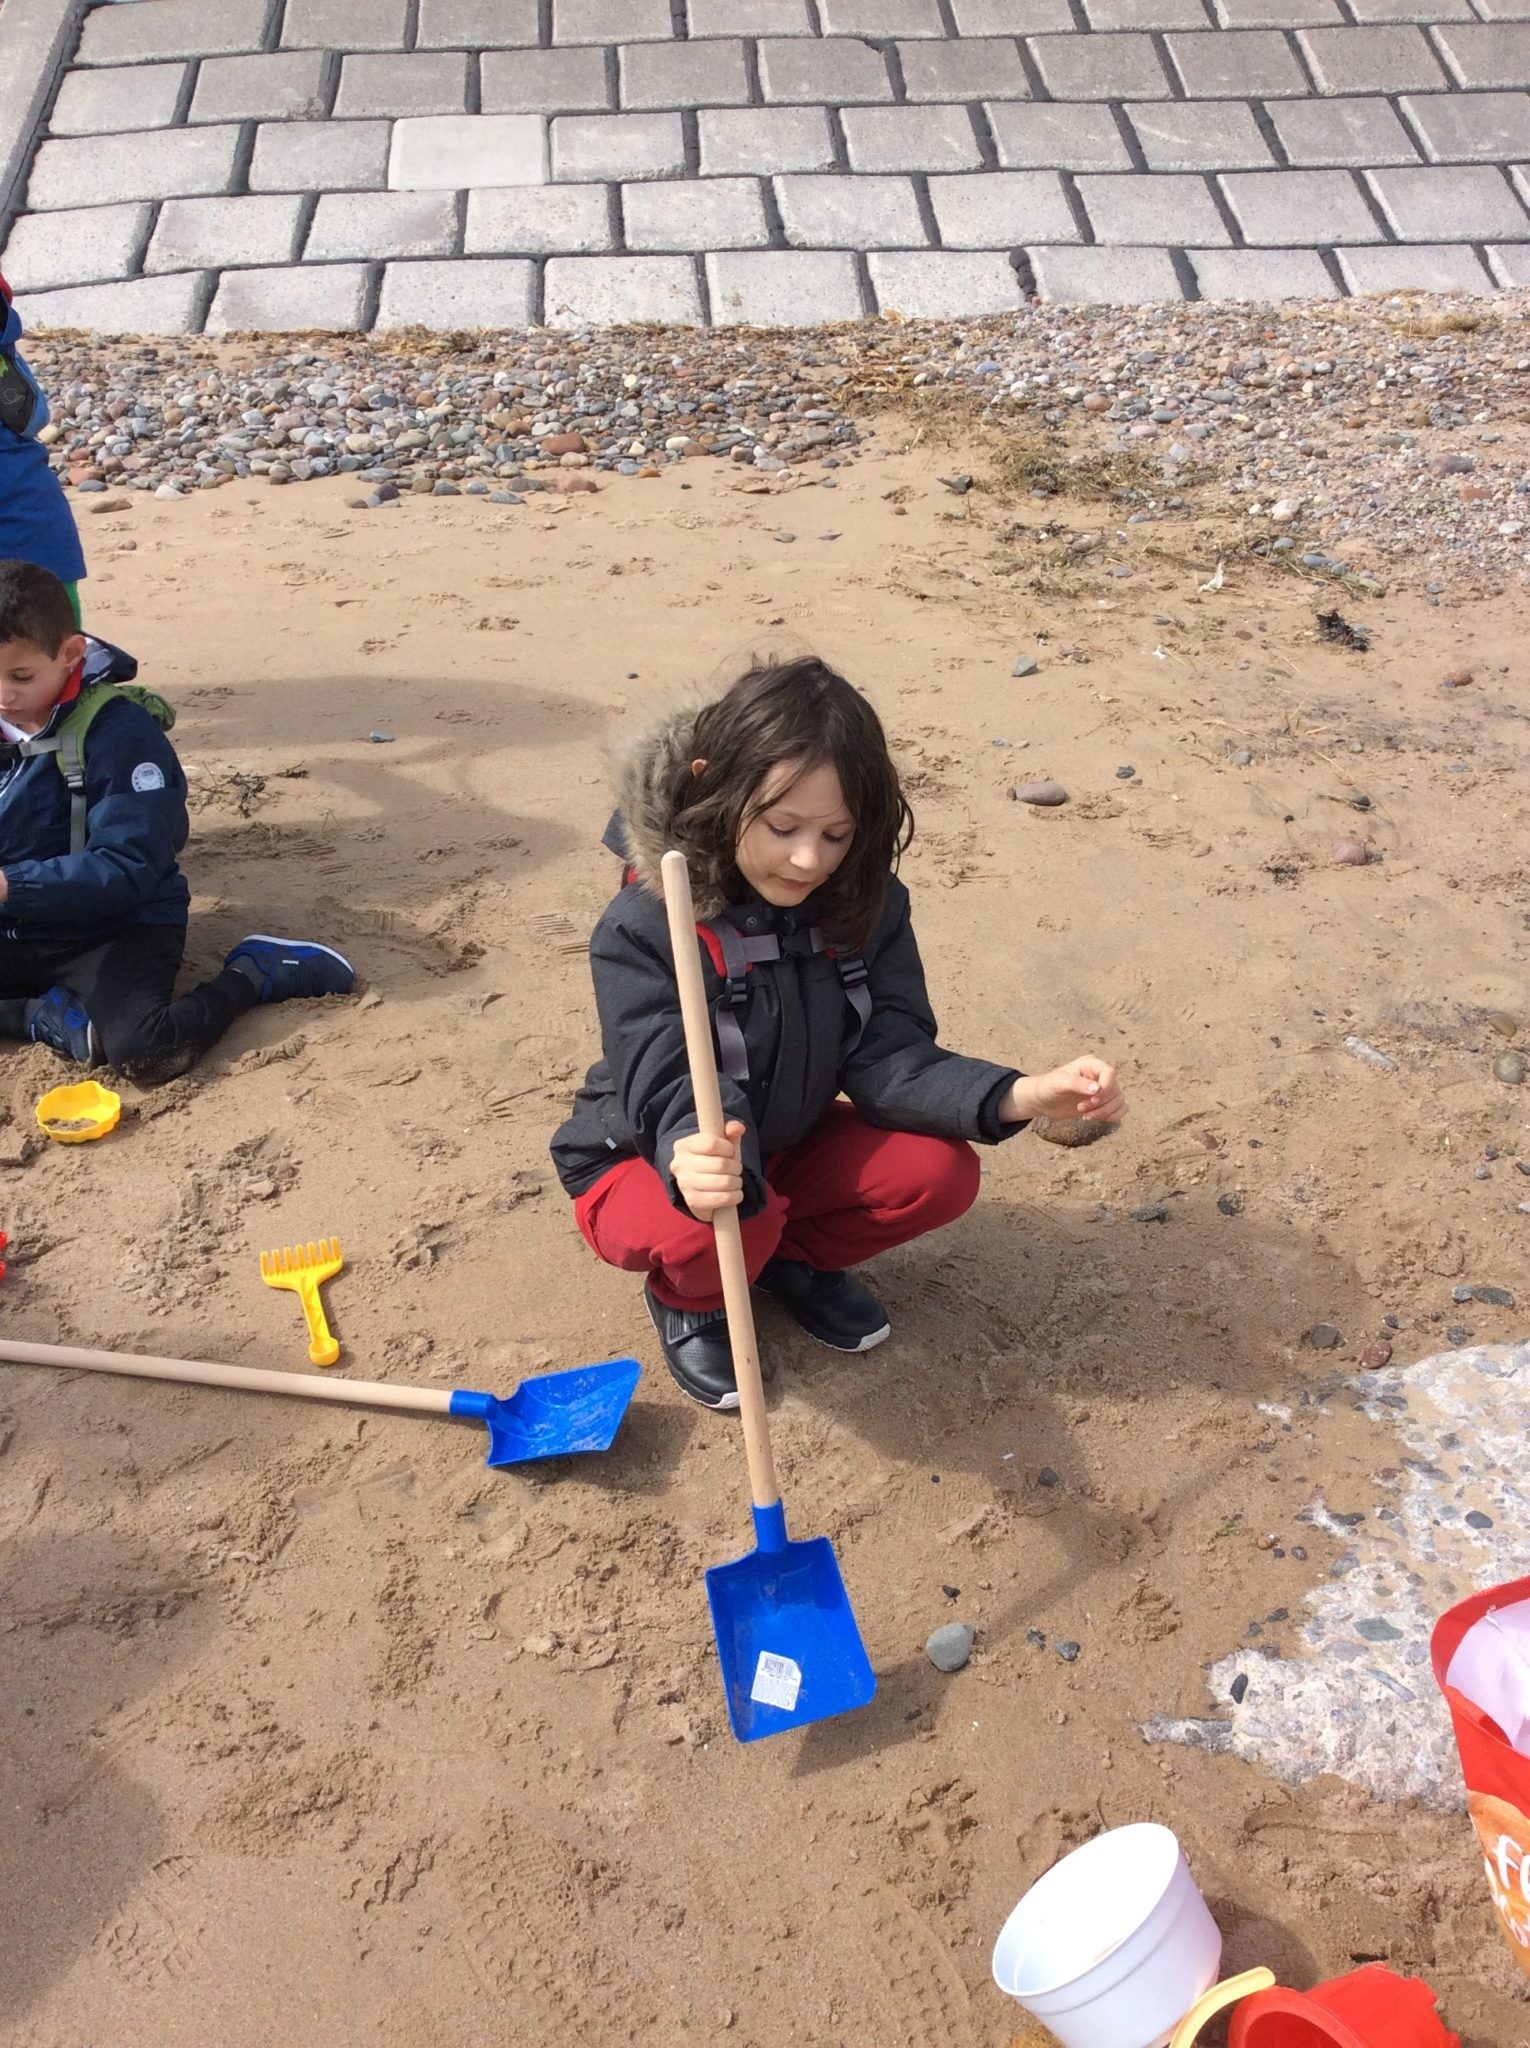 A Trip to the Beach With Room 4